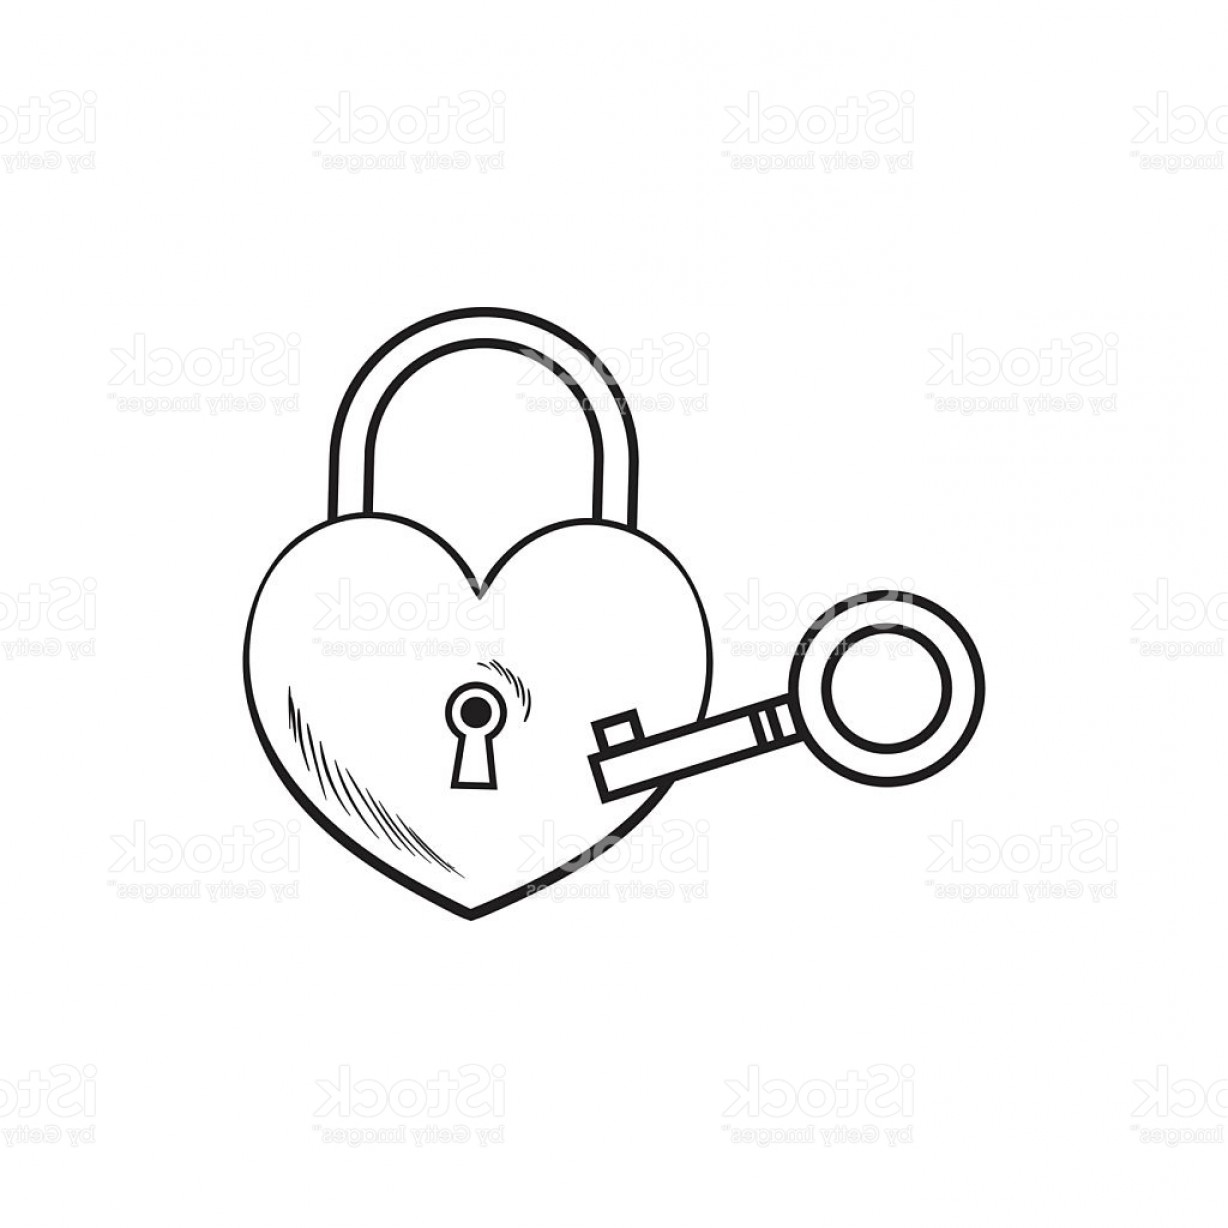 Heart Lock Vector: Heart Shaped Padlock And Key For Love Lock Unity Ceremony Gm